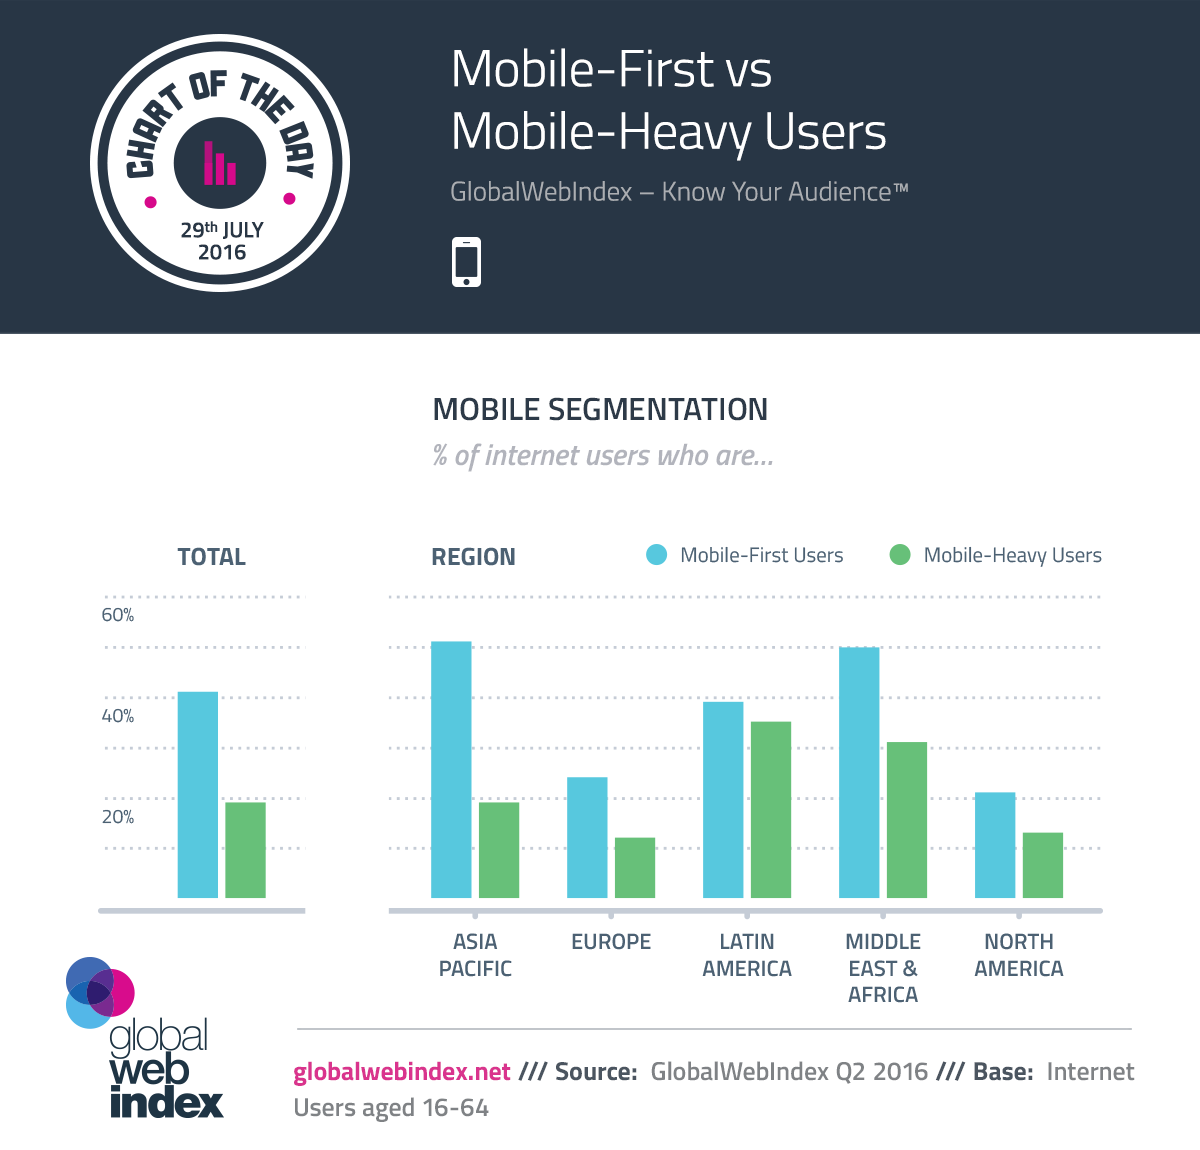 Mobile-First vs Mobile-Heavy Users